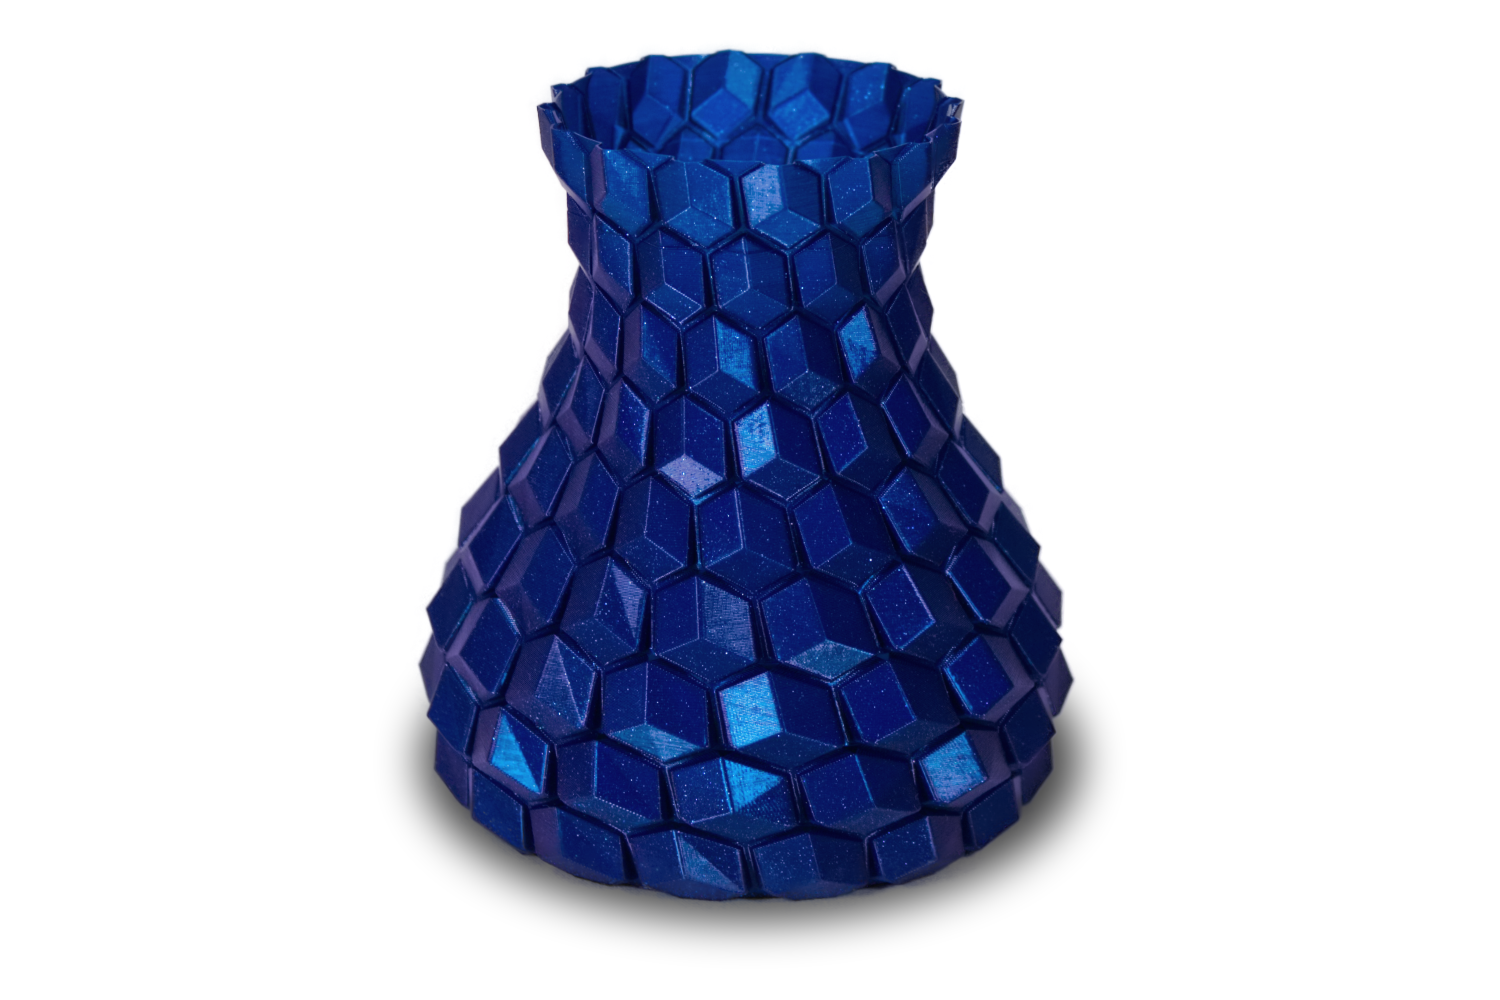 PLA (polylactic acid) - PLA is the most common FFF 3D printing material; it is easy to print, rigid, and does not warp easily. However, it lacks the temperature resistance and strength that many other materials offer. It is an excellent choice for prototypes, concept models, and low-wear toys.Best used for: Prototypes, concept models, low-wear toys, etc.—————Nautilus Tool Cartridge CompatibilityB 250 // X 400 // X 800